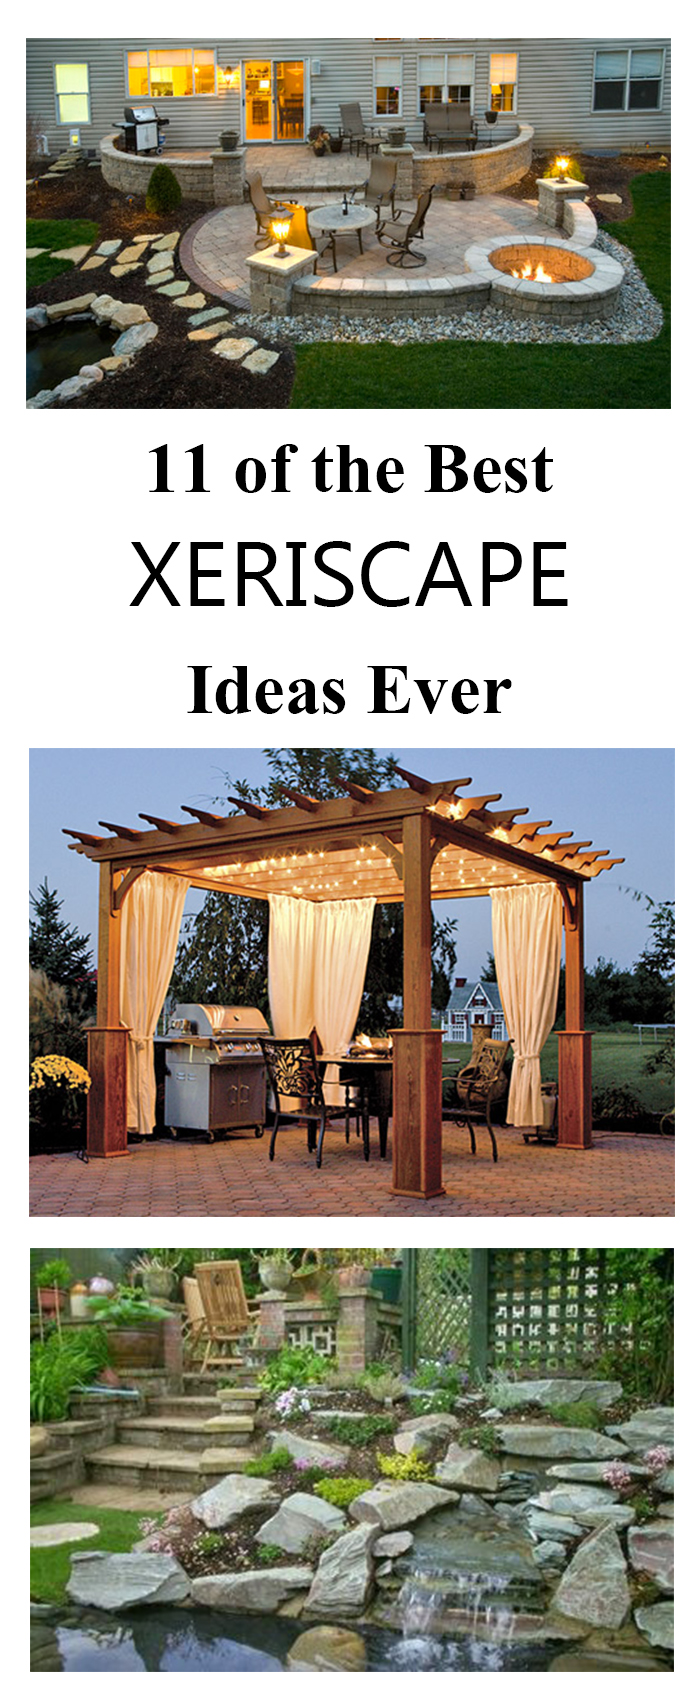 11 of the Best Xeriscape Ideas Ever